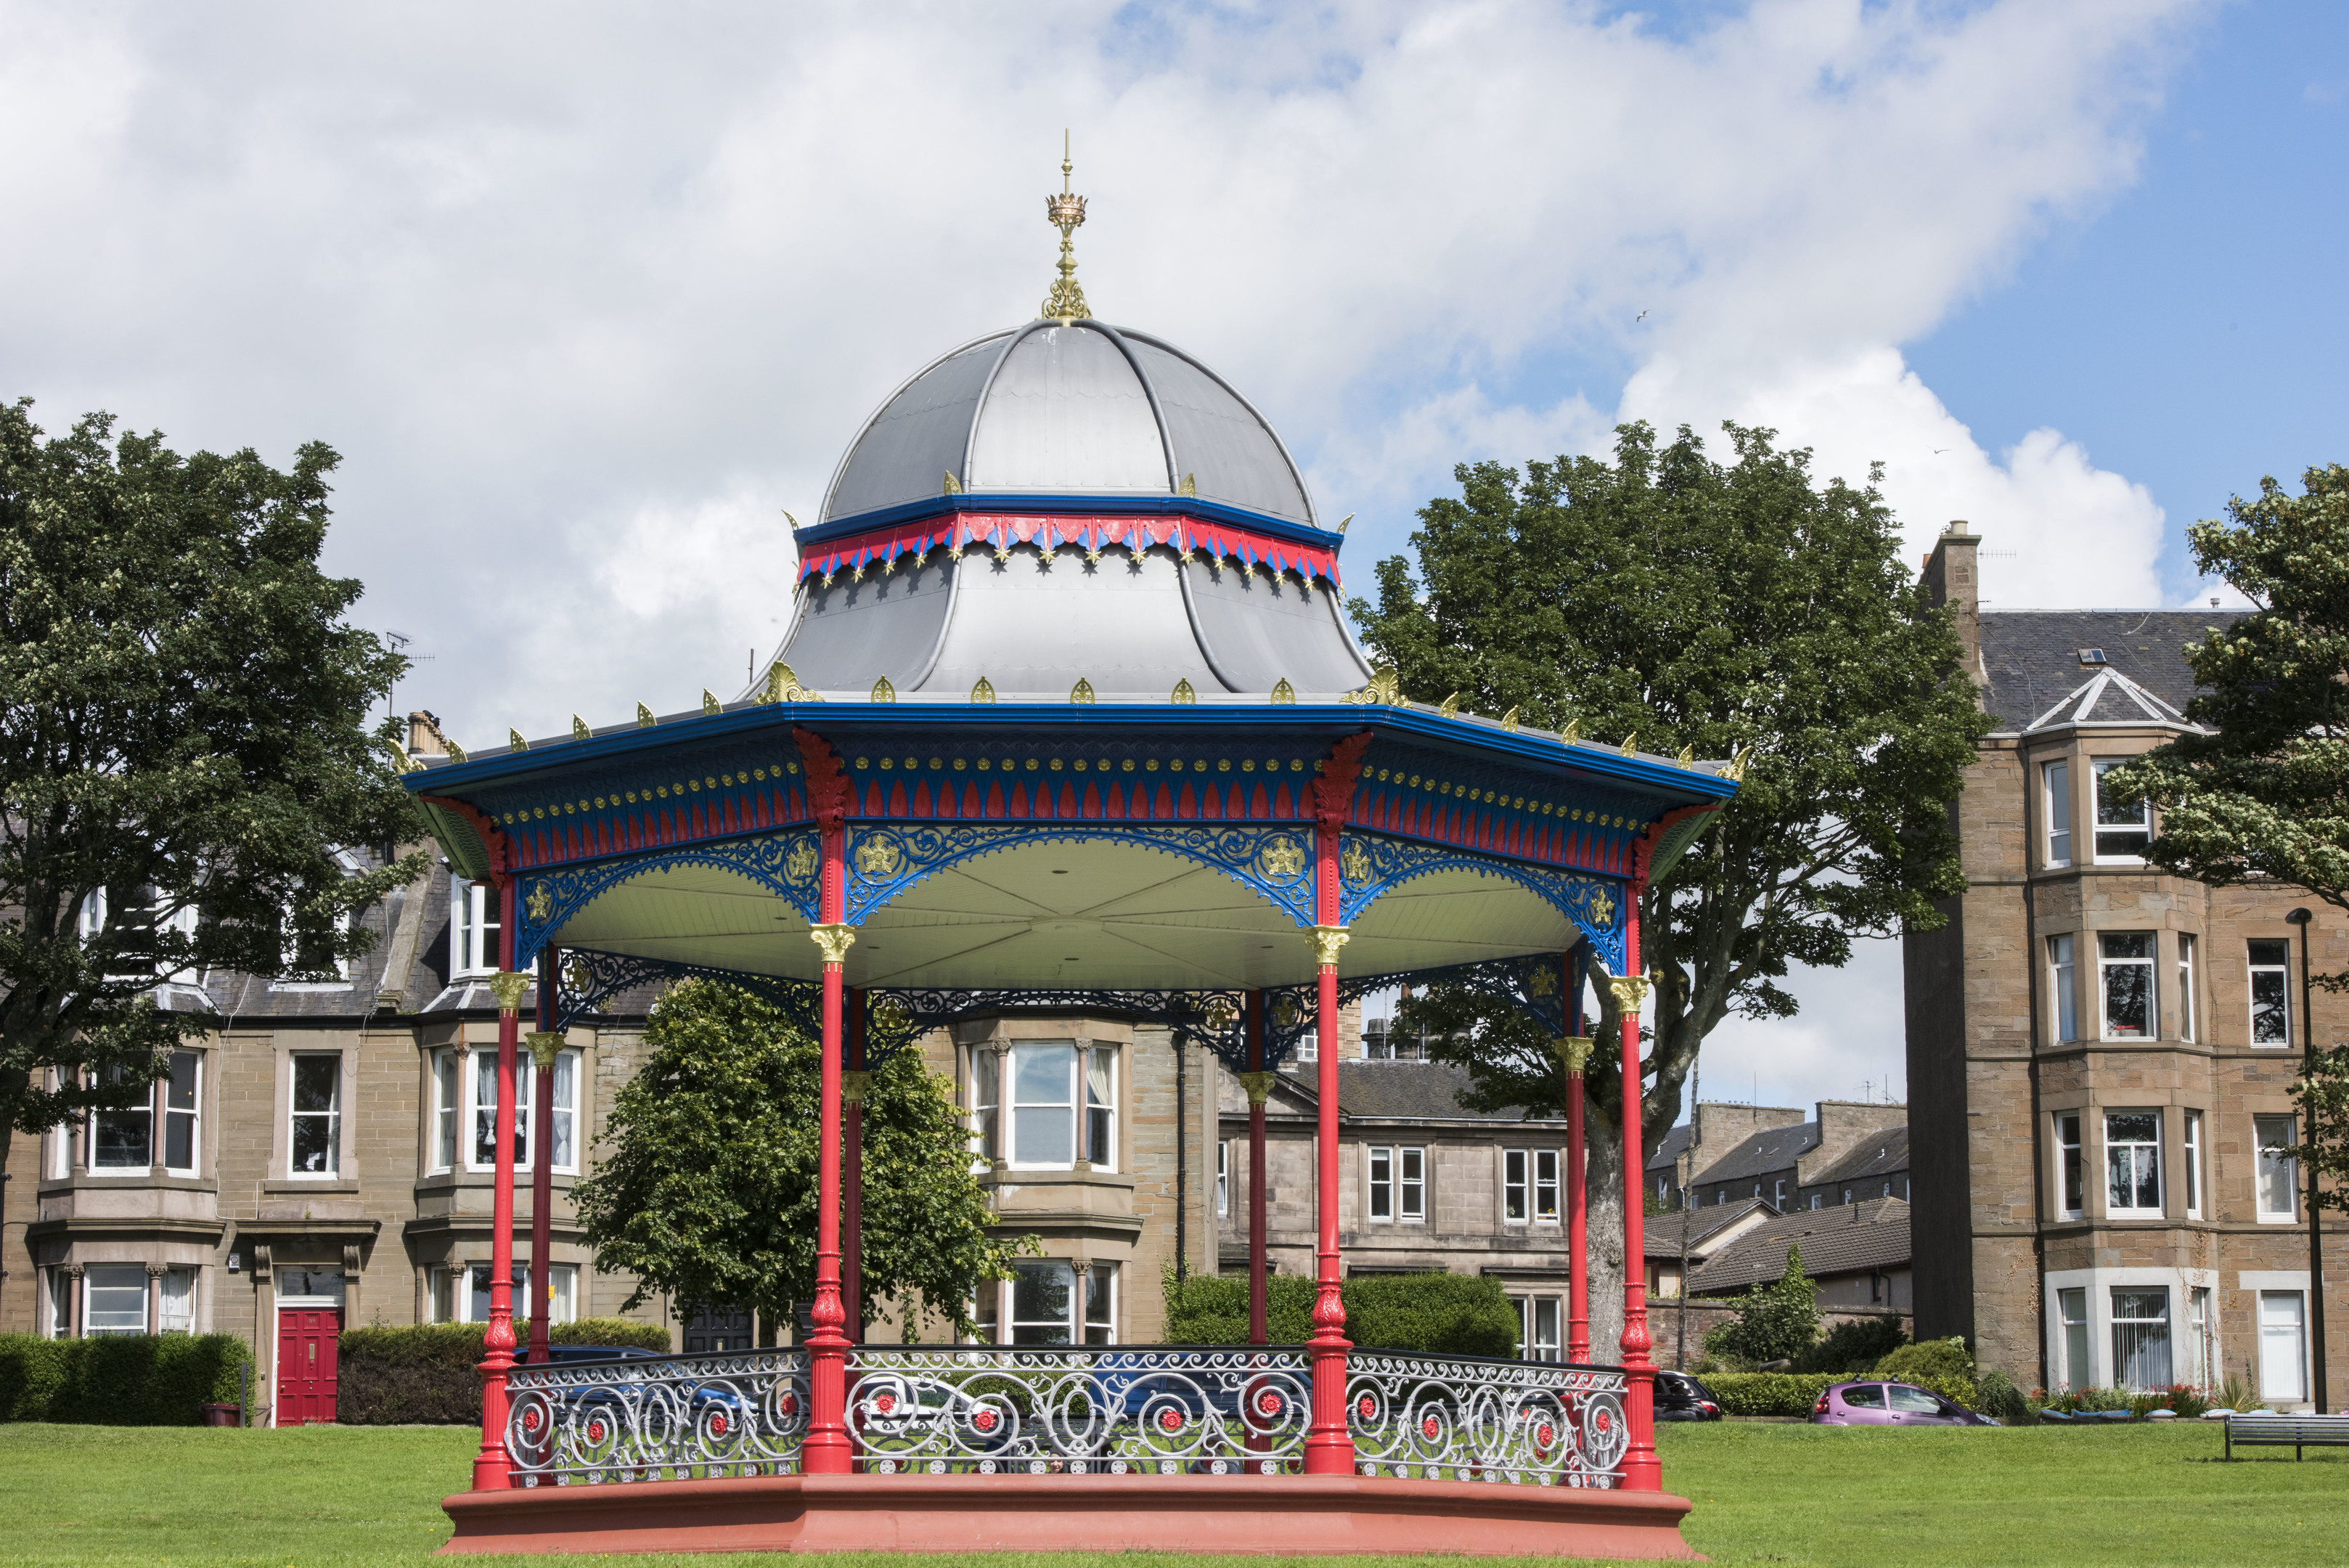 The Magdalen Green bandstand.